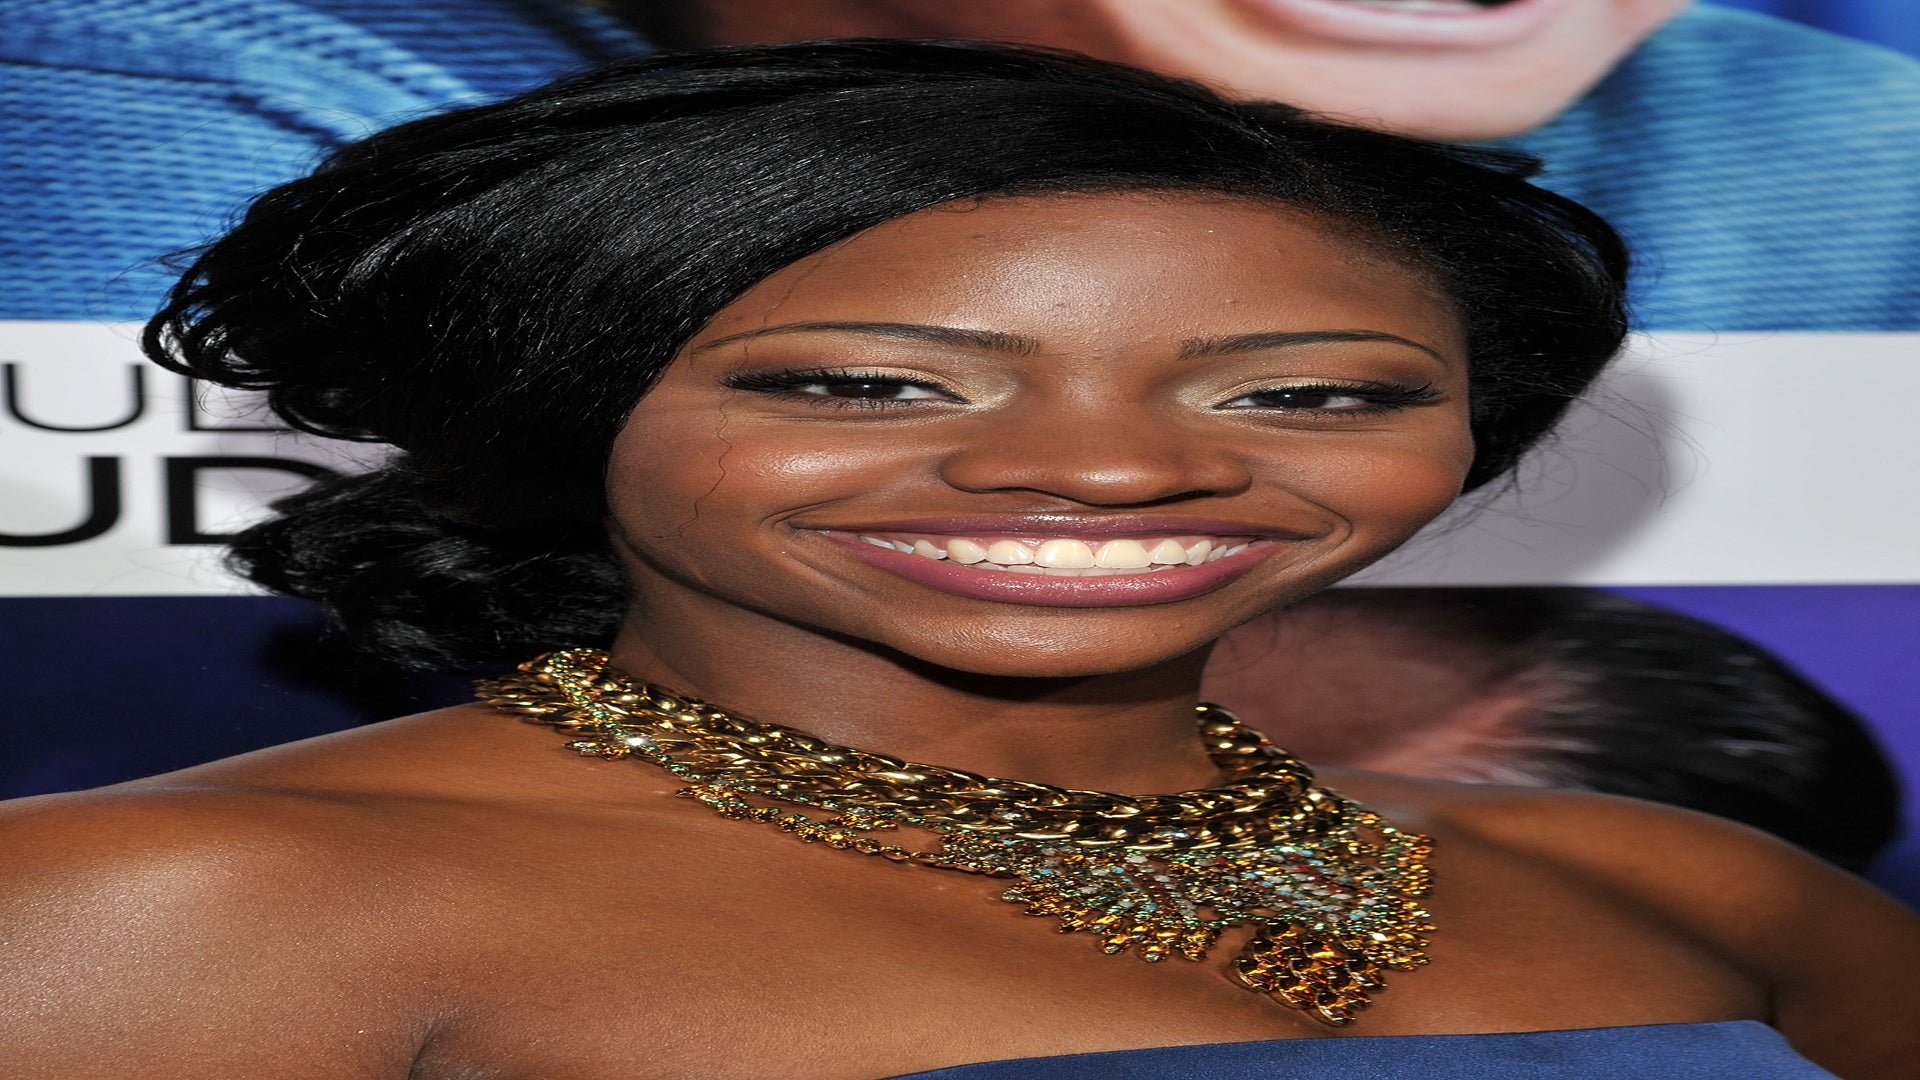 EXCLUSIVE: Teyonah Parris' Top 4 Reasons Why You Should Watch 'Mad Men'